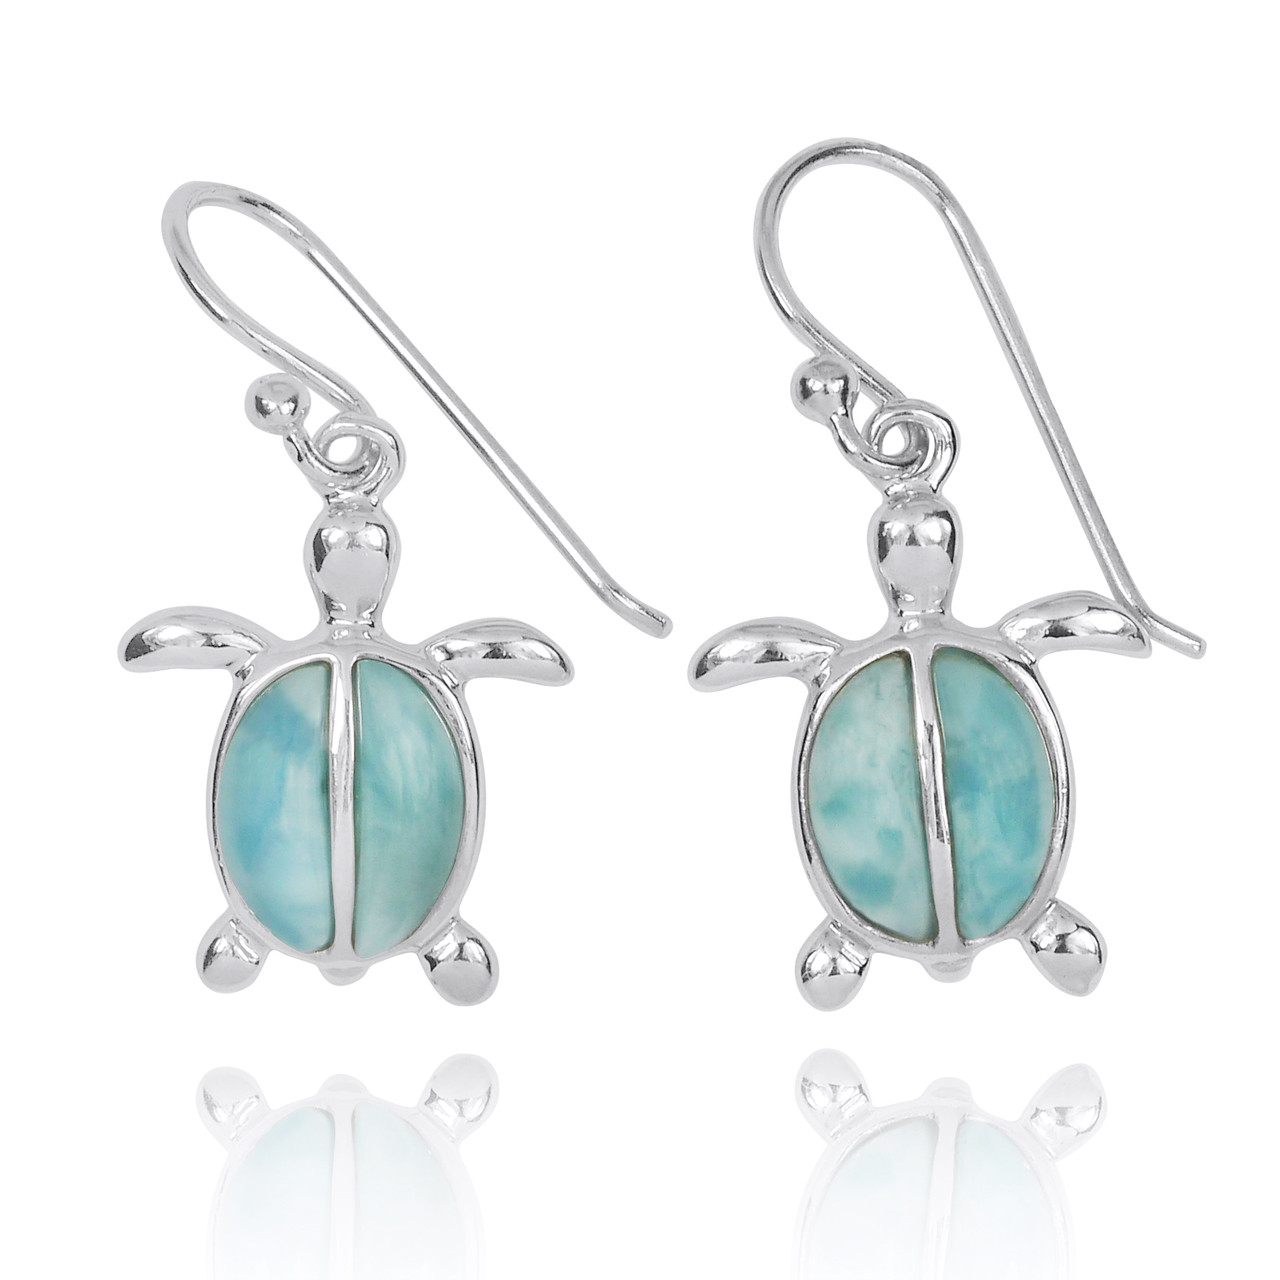 Sterling Silver Turtle French Wire Earrings with 2 Larimar Stones